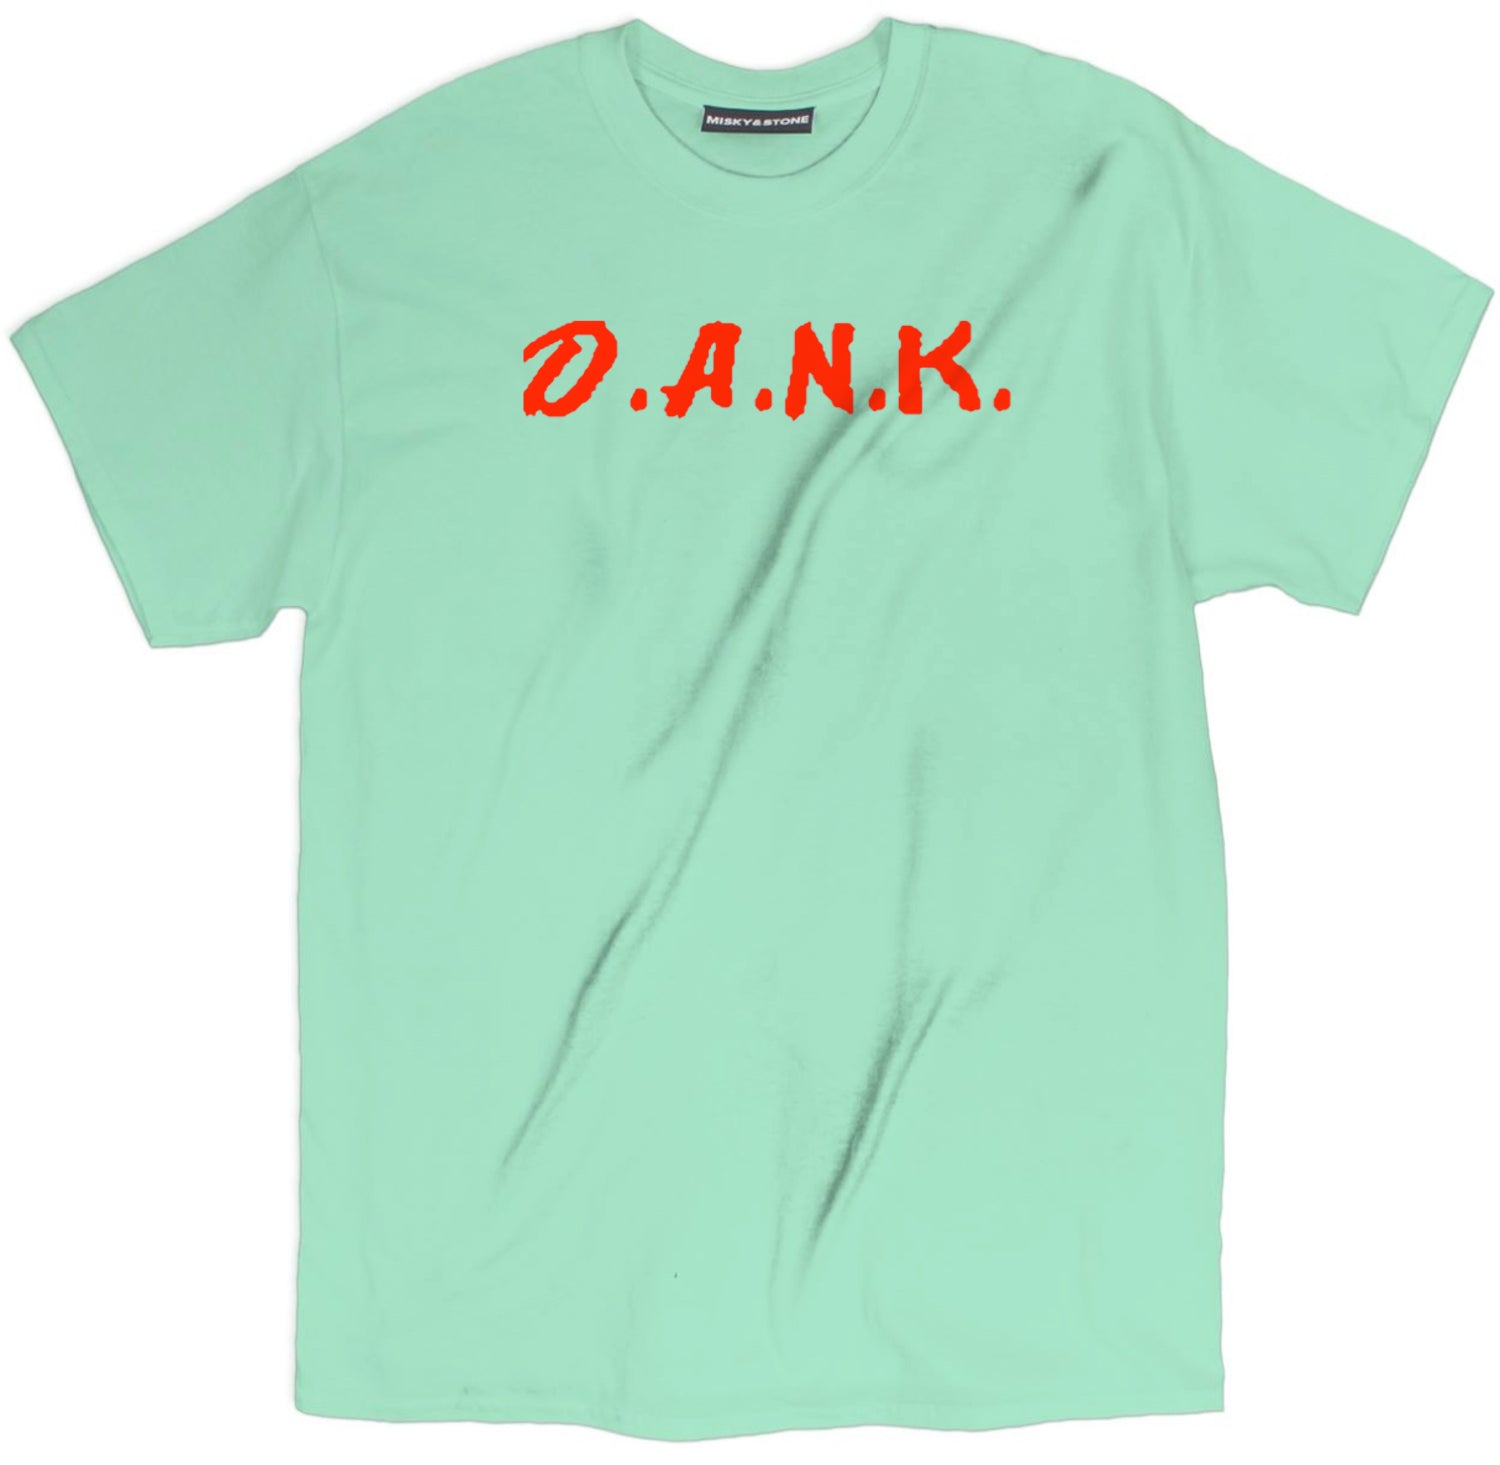 dank t shirt, dare spoof tee, weed shirts, weed t shirts, 420 shirts, 420 t shirts, marijuana shirts, marijuana t shirts, 420 tees, marijuana t shirts, weed tee shirts, 420 clothing, parody shirts, parody t shirts, pun shirts, pun t shirts, shirts with puns, spoofs shirt, spoofs t shirt, designer parody shirts, logo parody t shirts, art parody  shirts, movie parody t shirts, parody clothing brands,